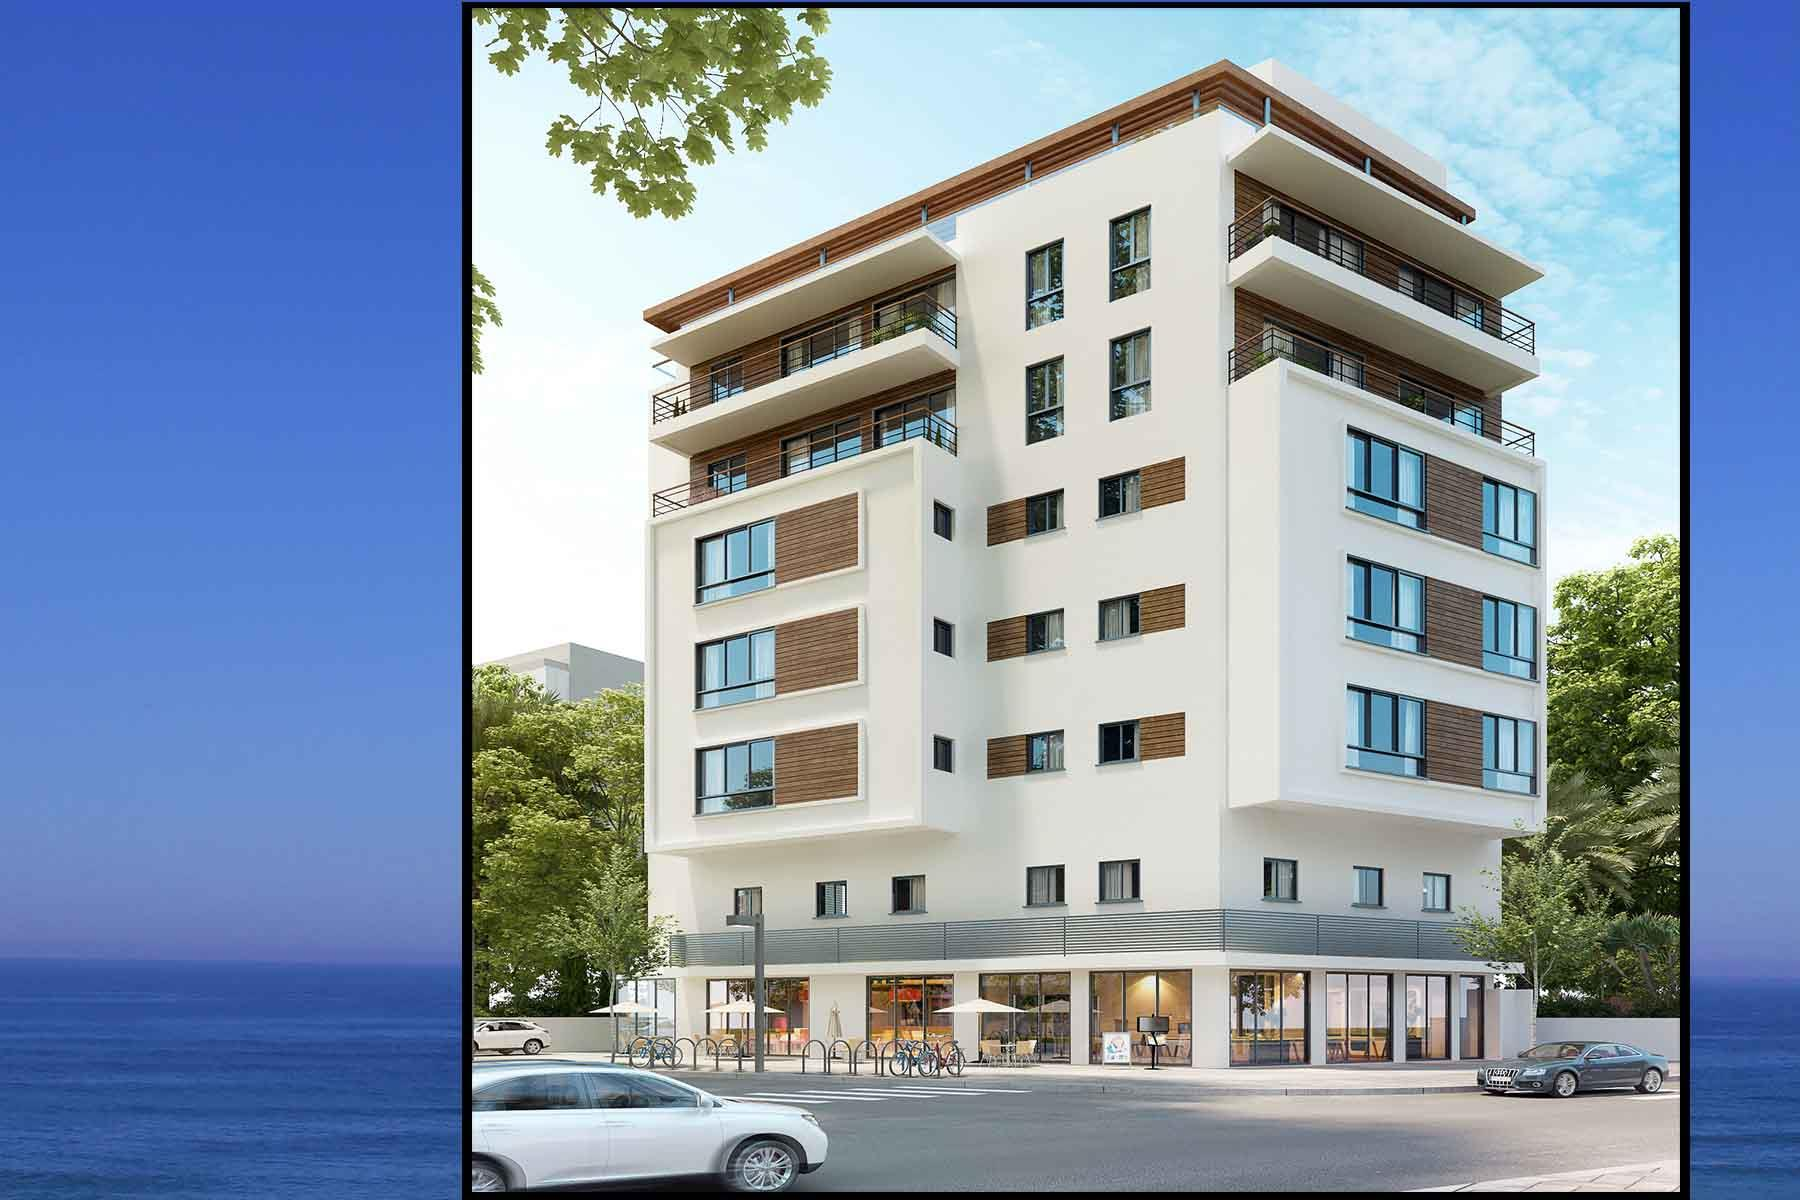 'Apartments / Flats' building or community at 'Exclusive New Development in the Heart of TLV Yermiyahu 22 Tel Aviv, Israel 6259406 Israel'